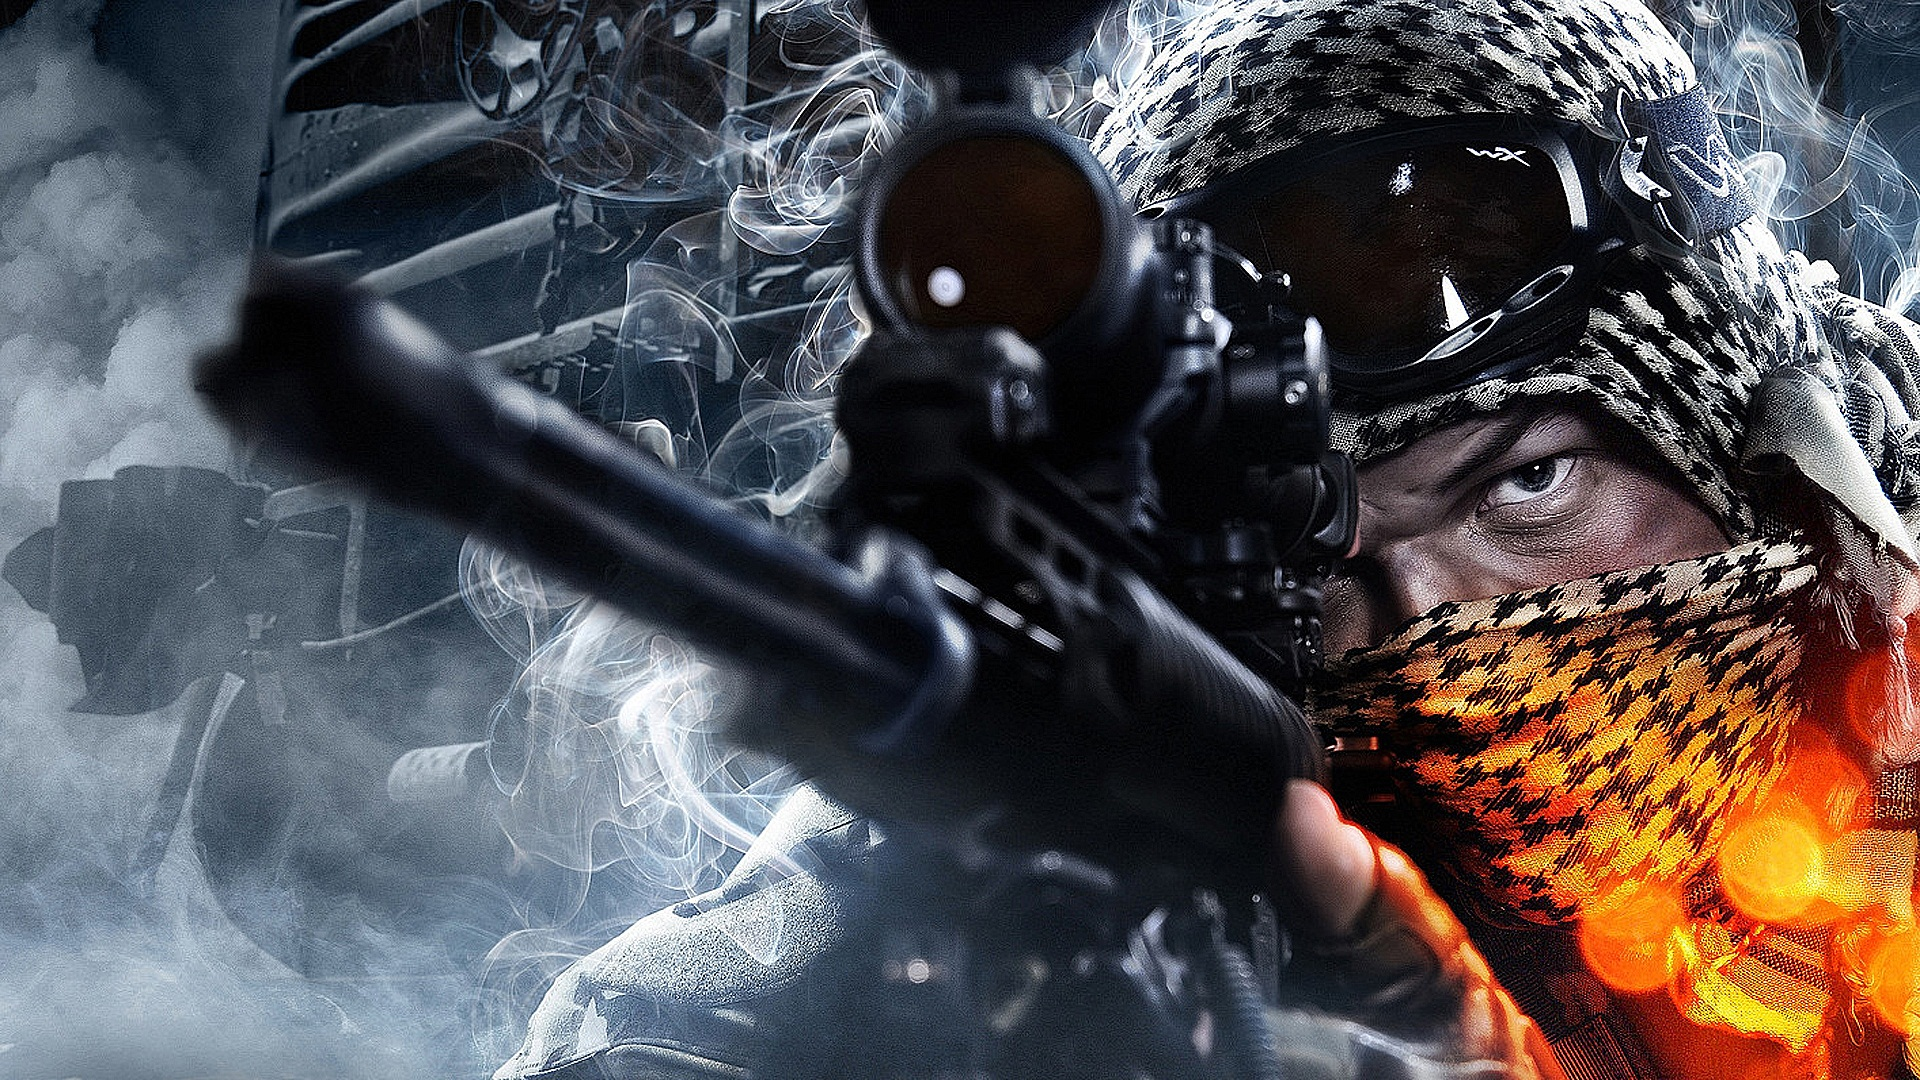 Battlefield 3 full hd wallpaper and background image 1920x1080 video game battlefield 3 wallpaper voltagebd Images